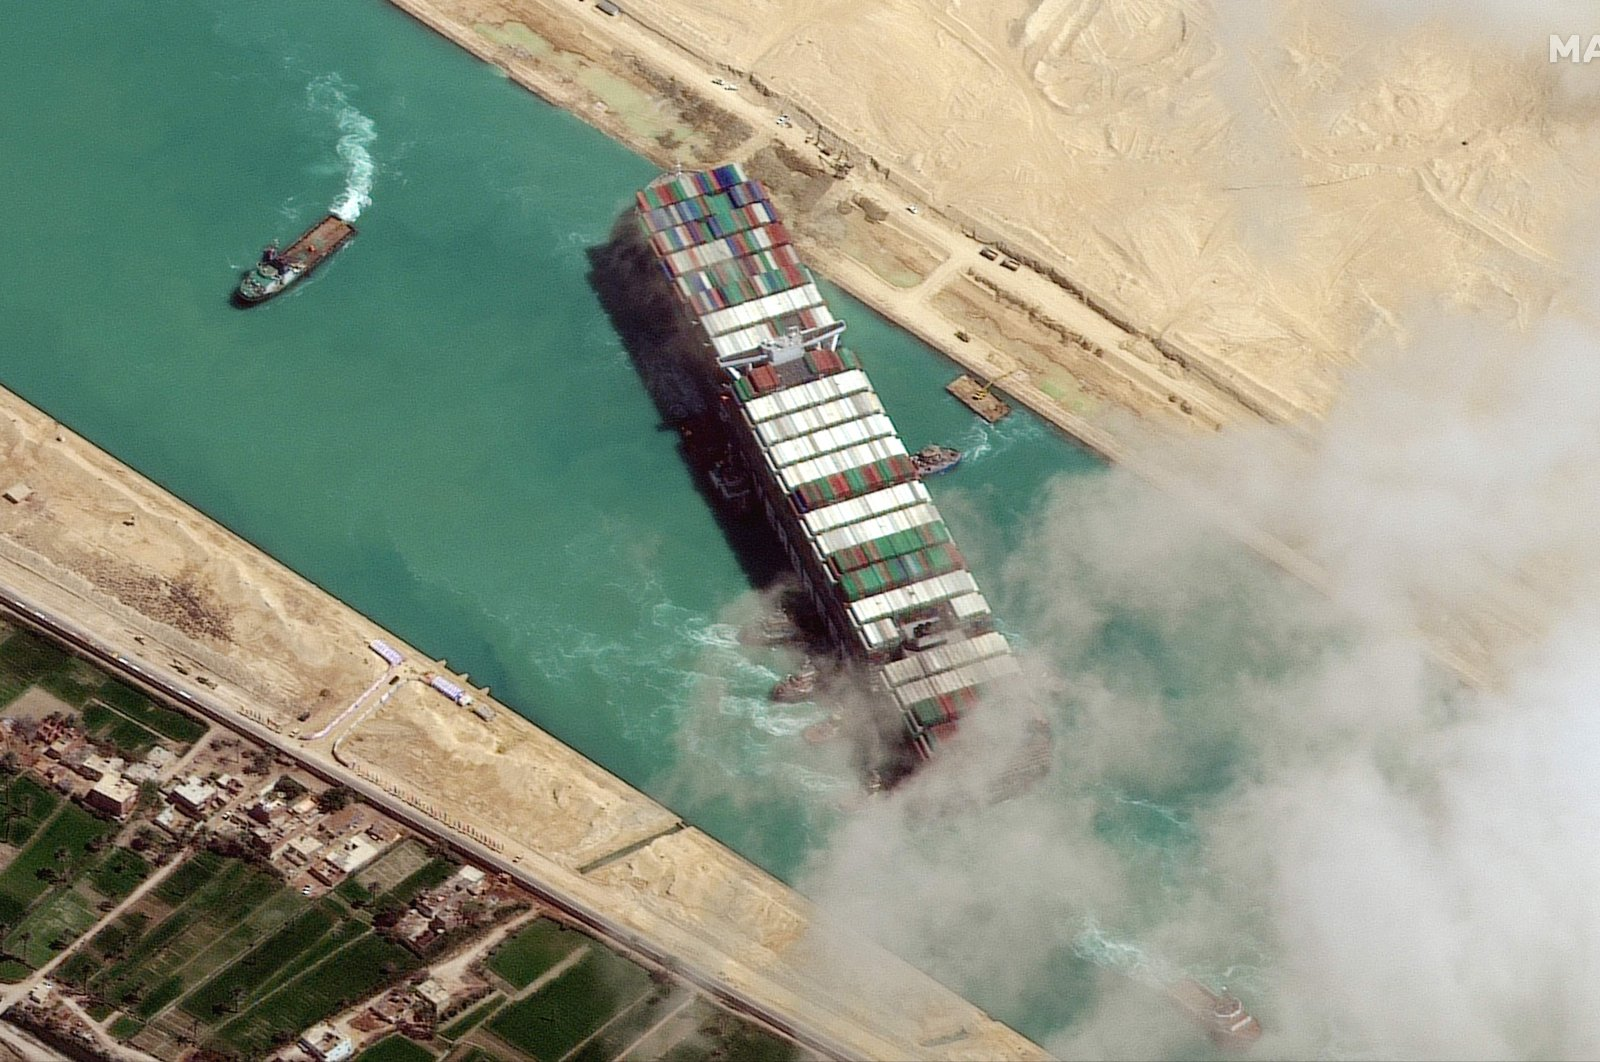 The MV Ever Given container ship is pushed by tugboats in the Suez Canal, Egypt, March 29, 2021. (AFP Photo)